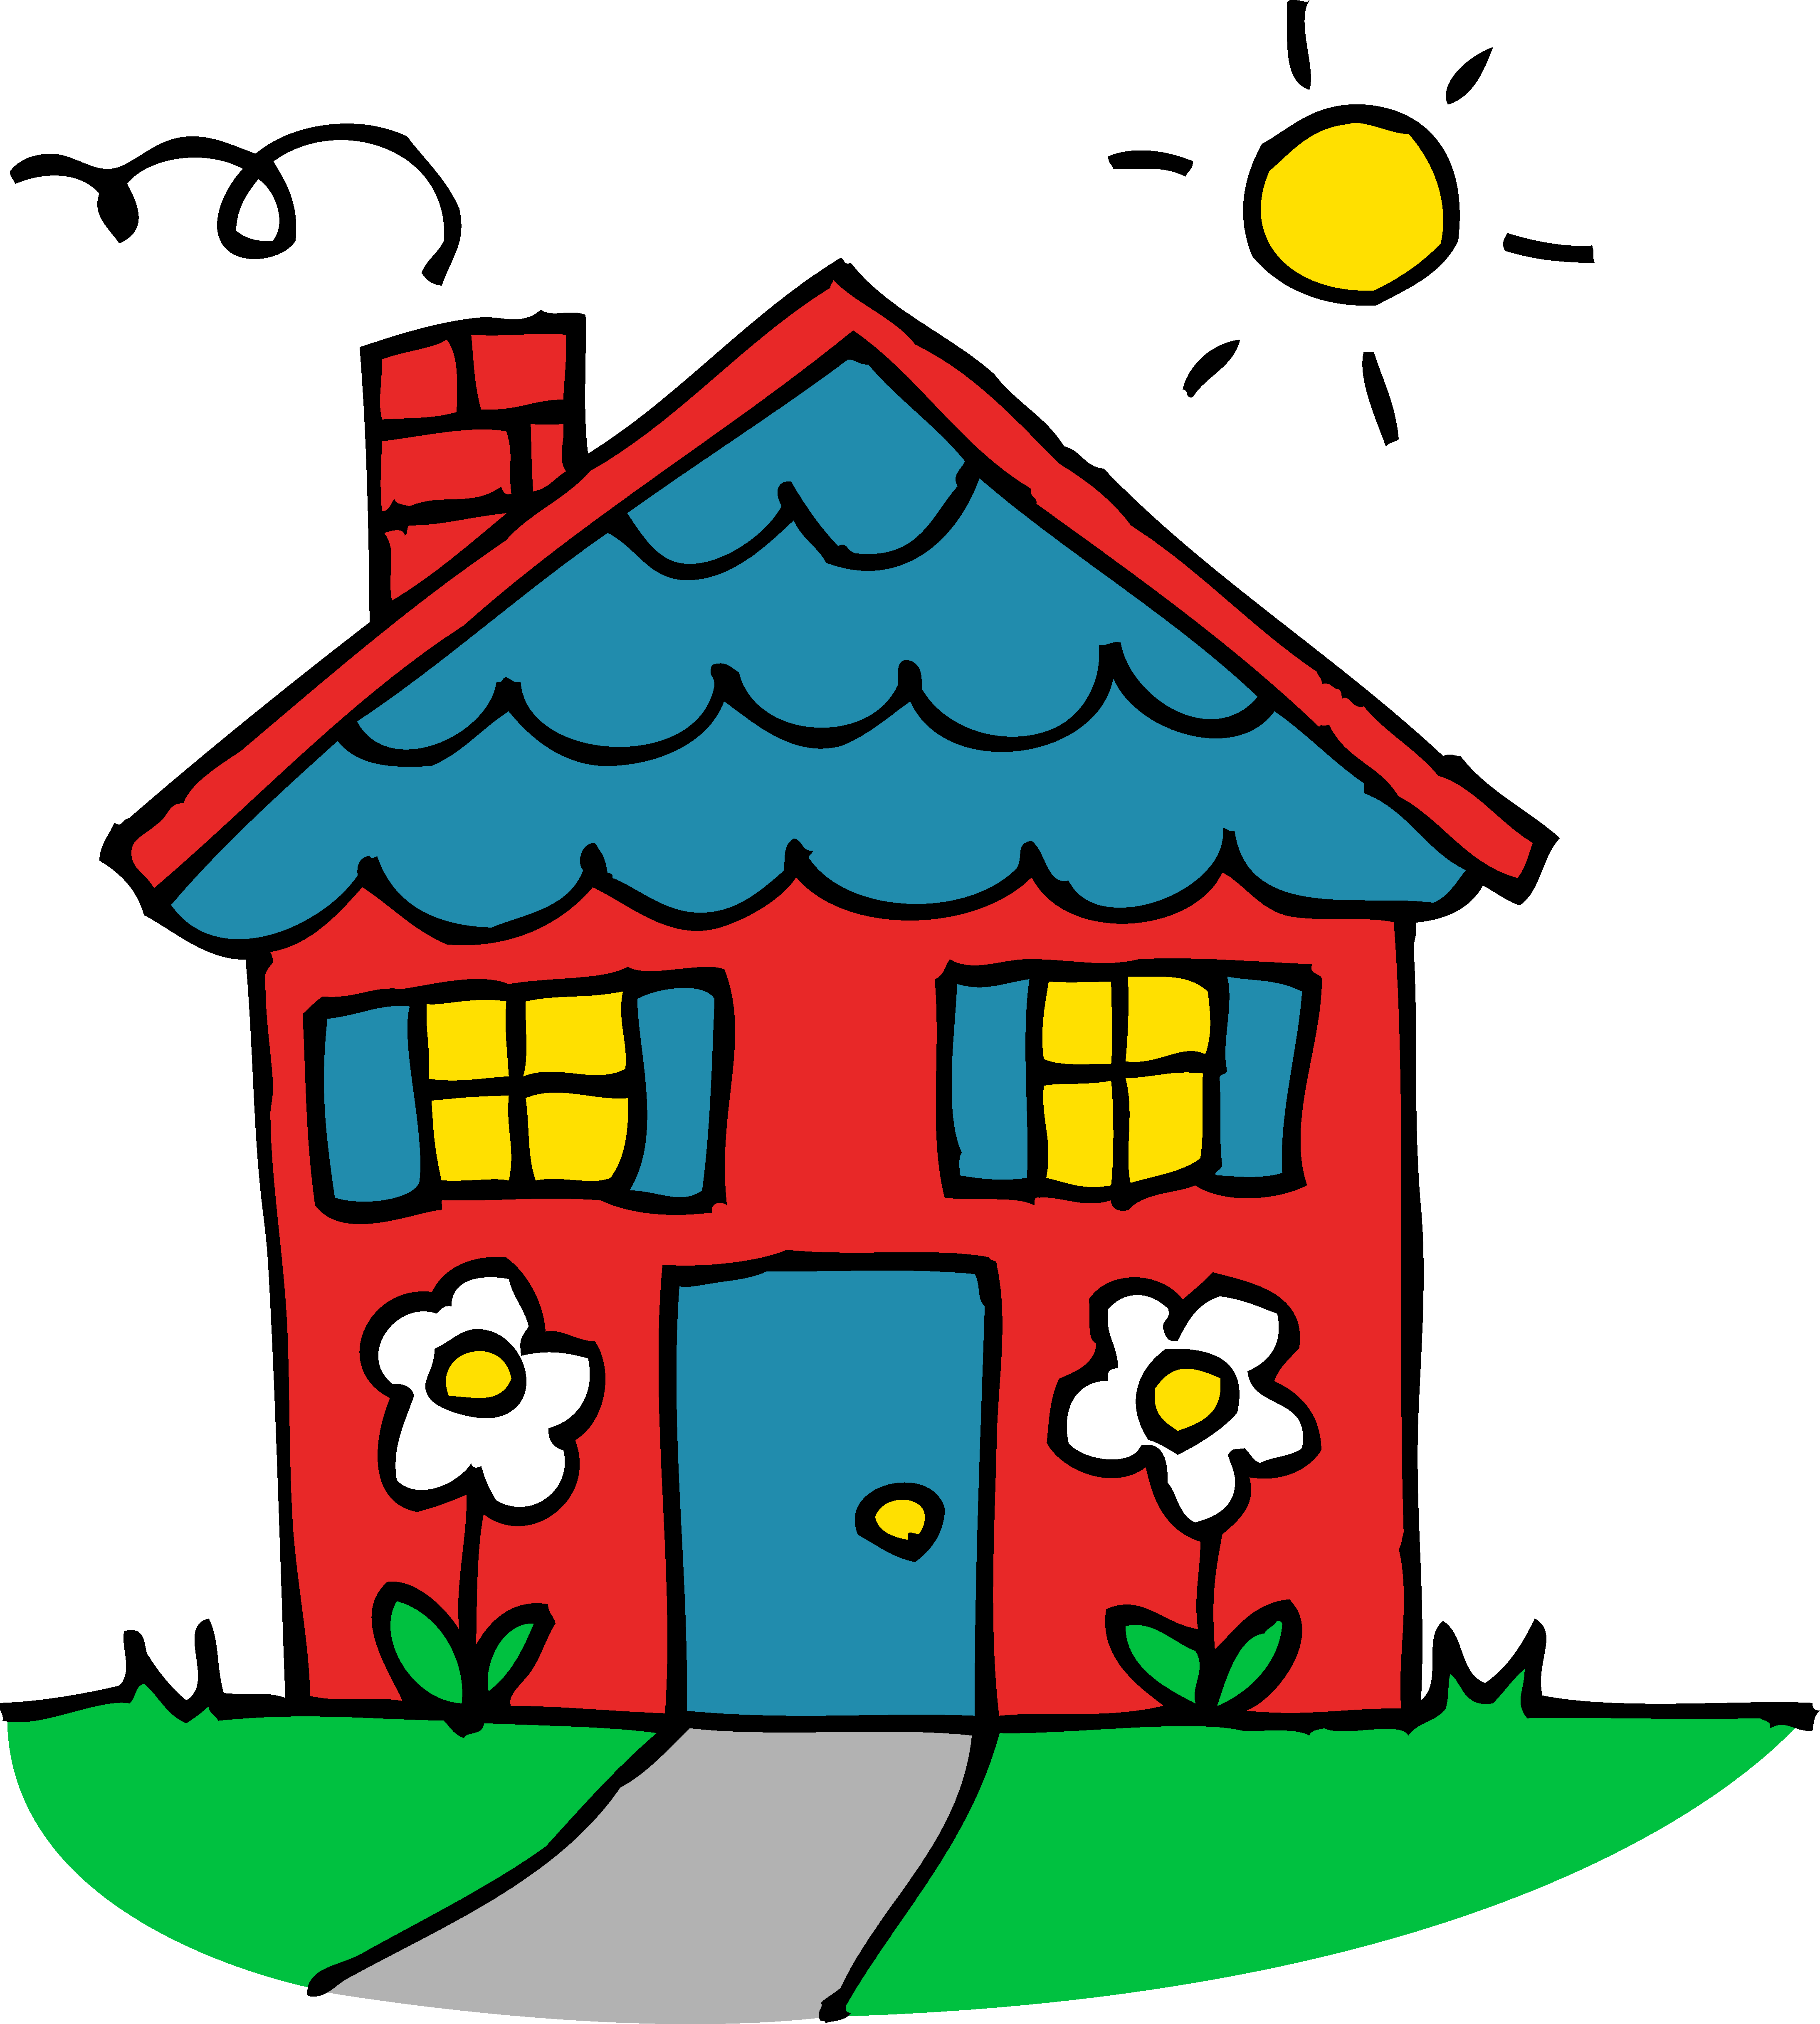 house for sale clip art - Clip Art Of A House